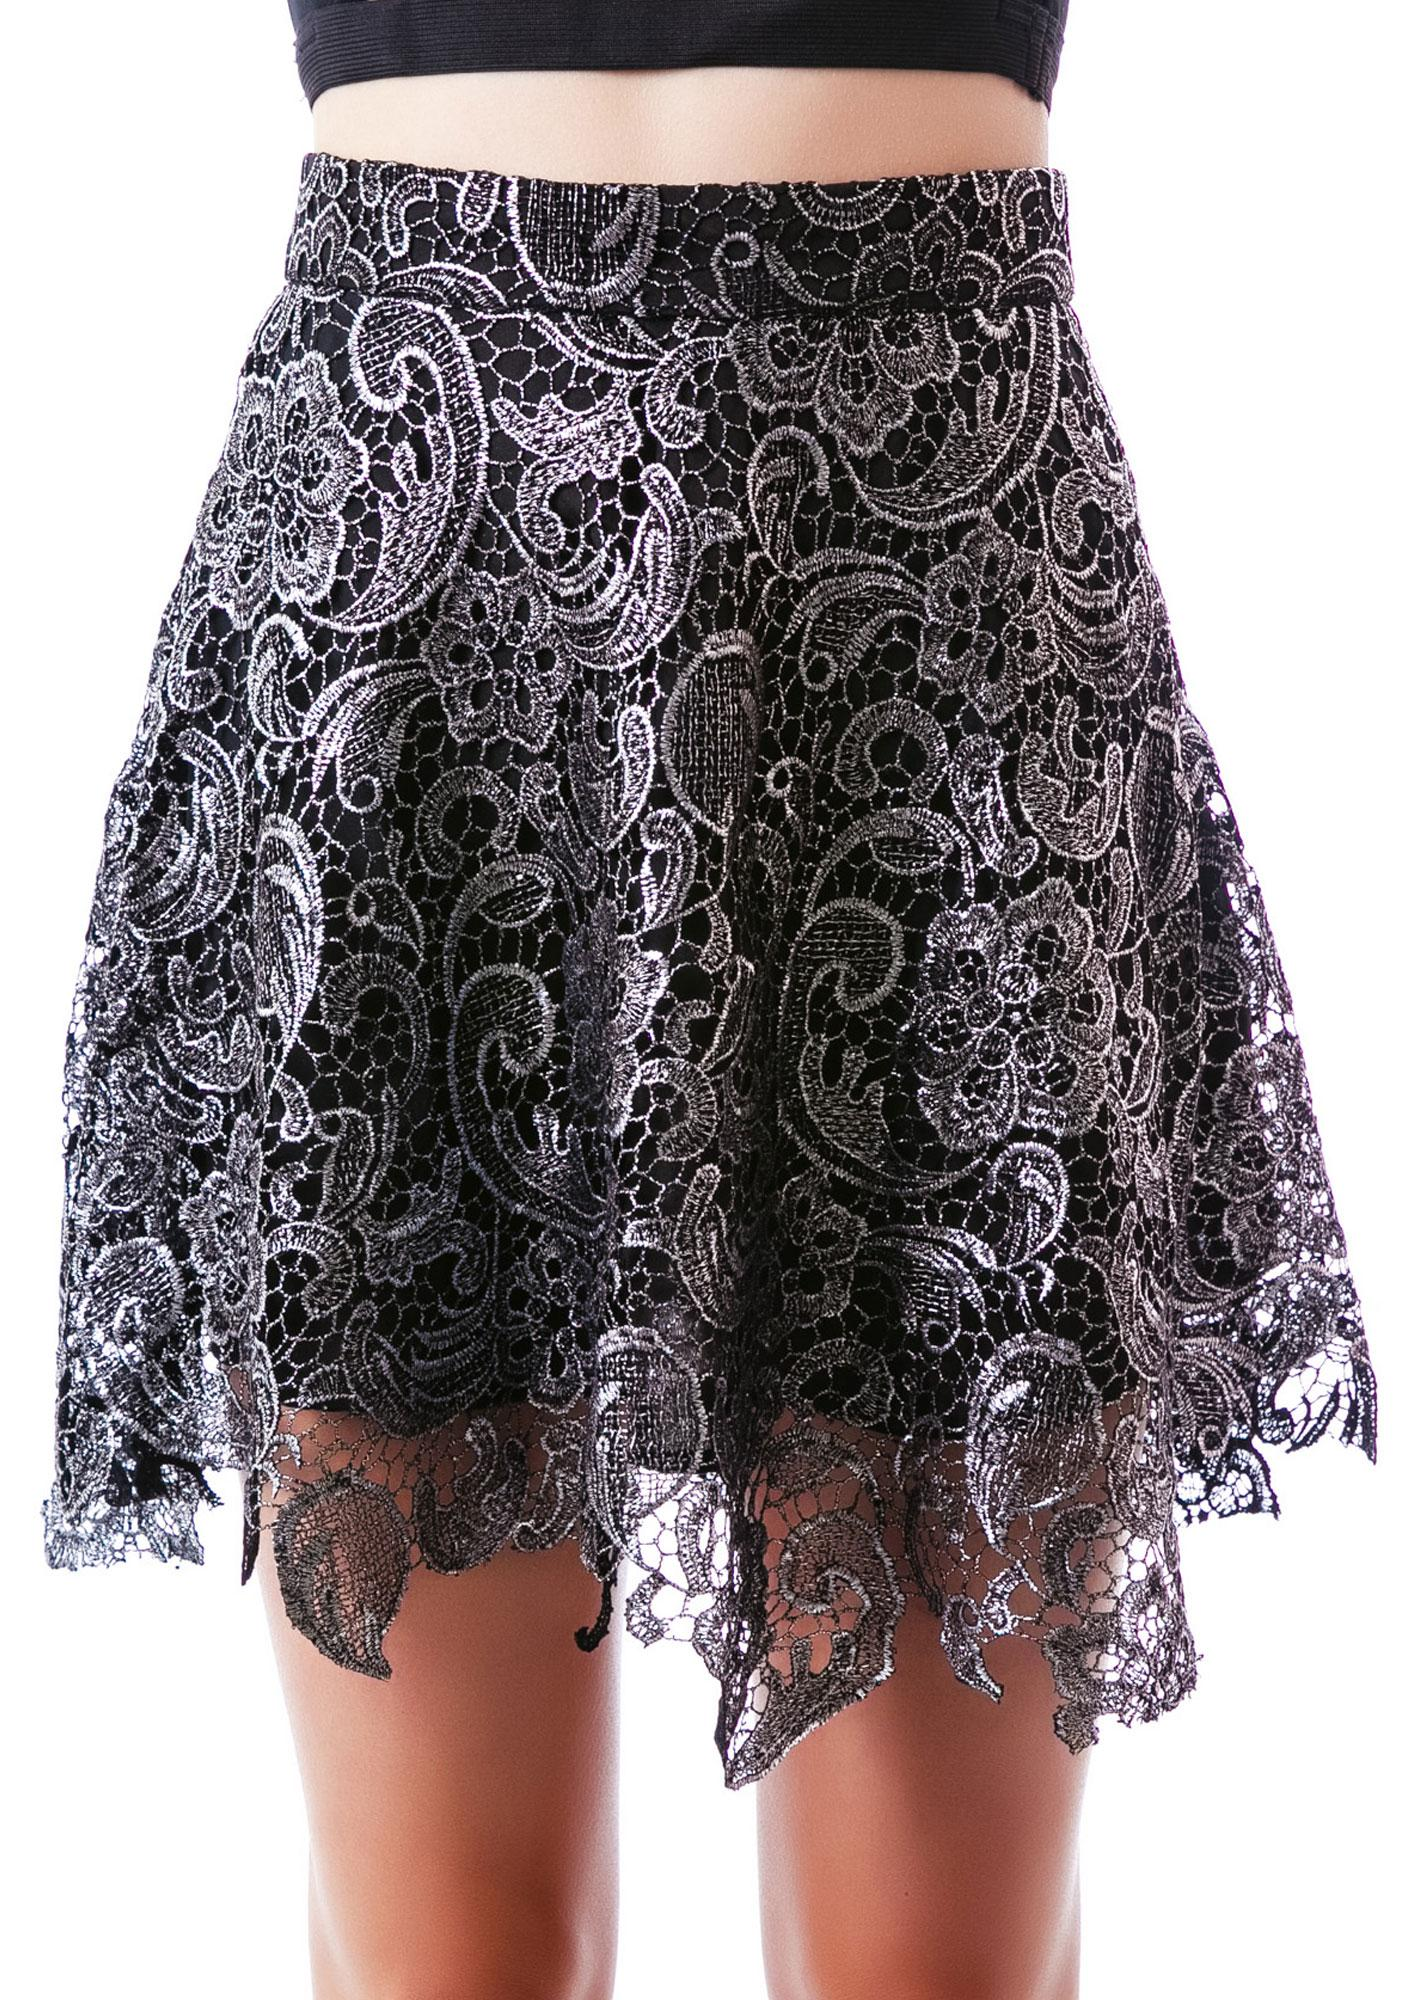 Lovelace Skirt